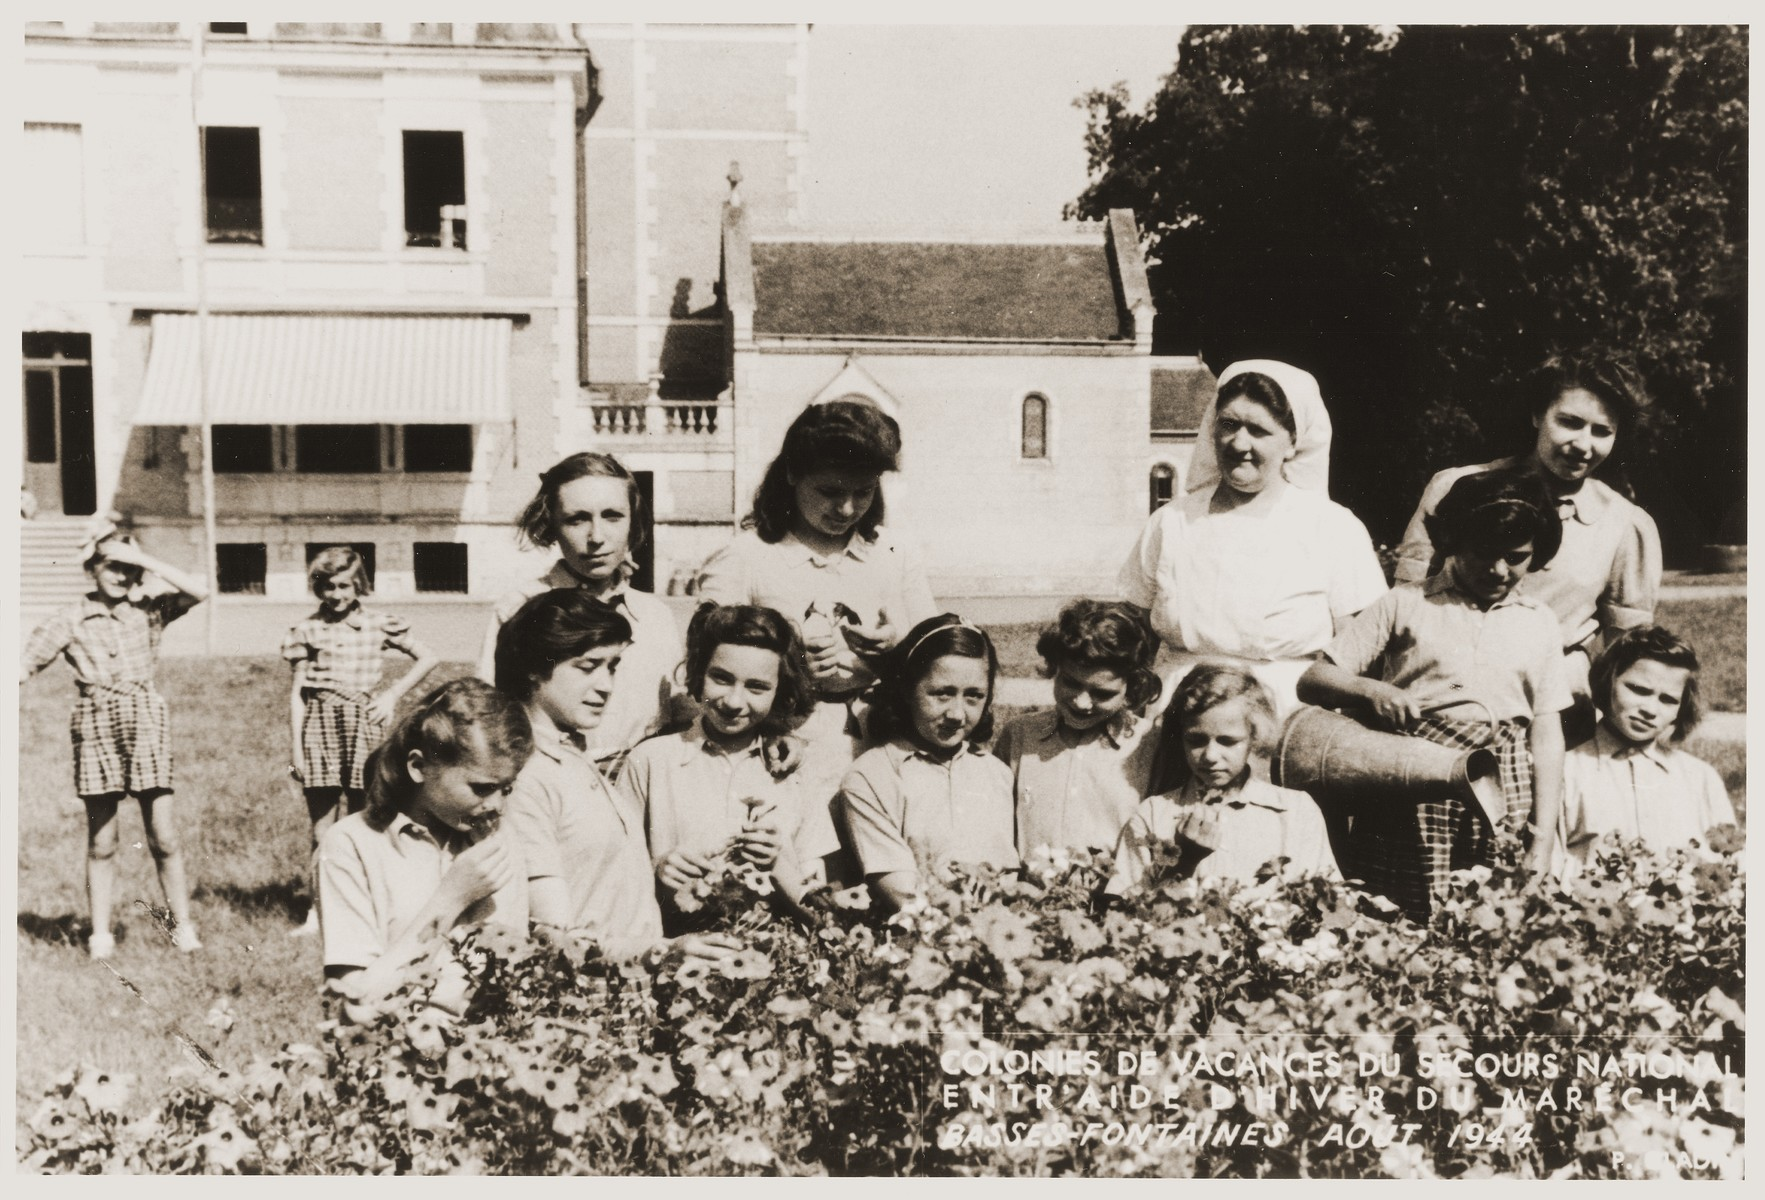 Group portrait of girls in the garden of the Les Basses-Fontaines children's home, where Jewish children were hidden during the war.    Among those pictured (with their aliases) are Eva Tuchsznajder (Yvonne Drapier) and France Cohen (Colin).  The caption identifies Les Basses-Fontaines as a vacation home sponsored by Petain.